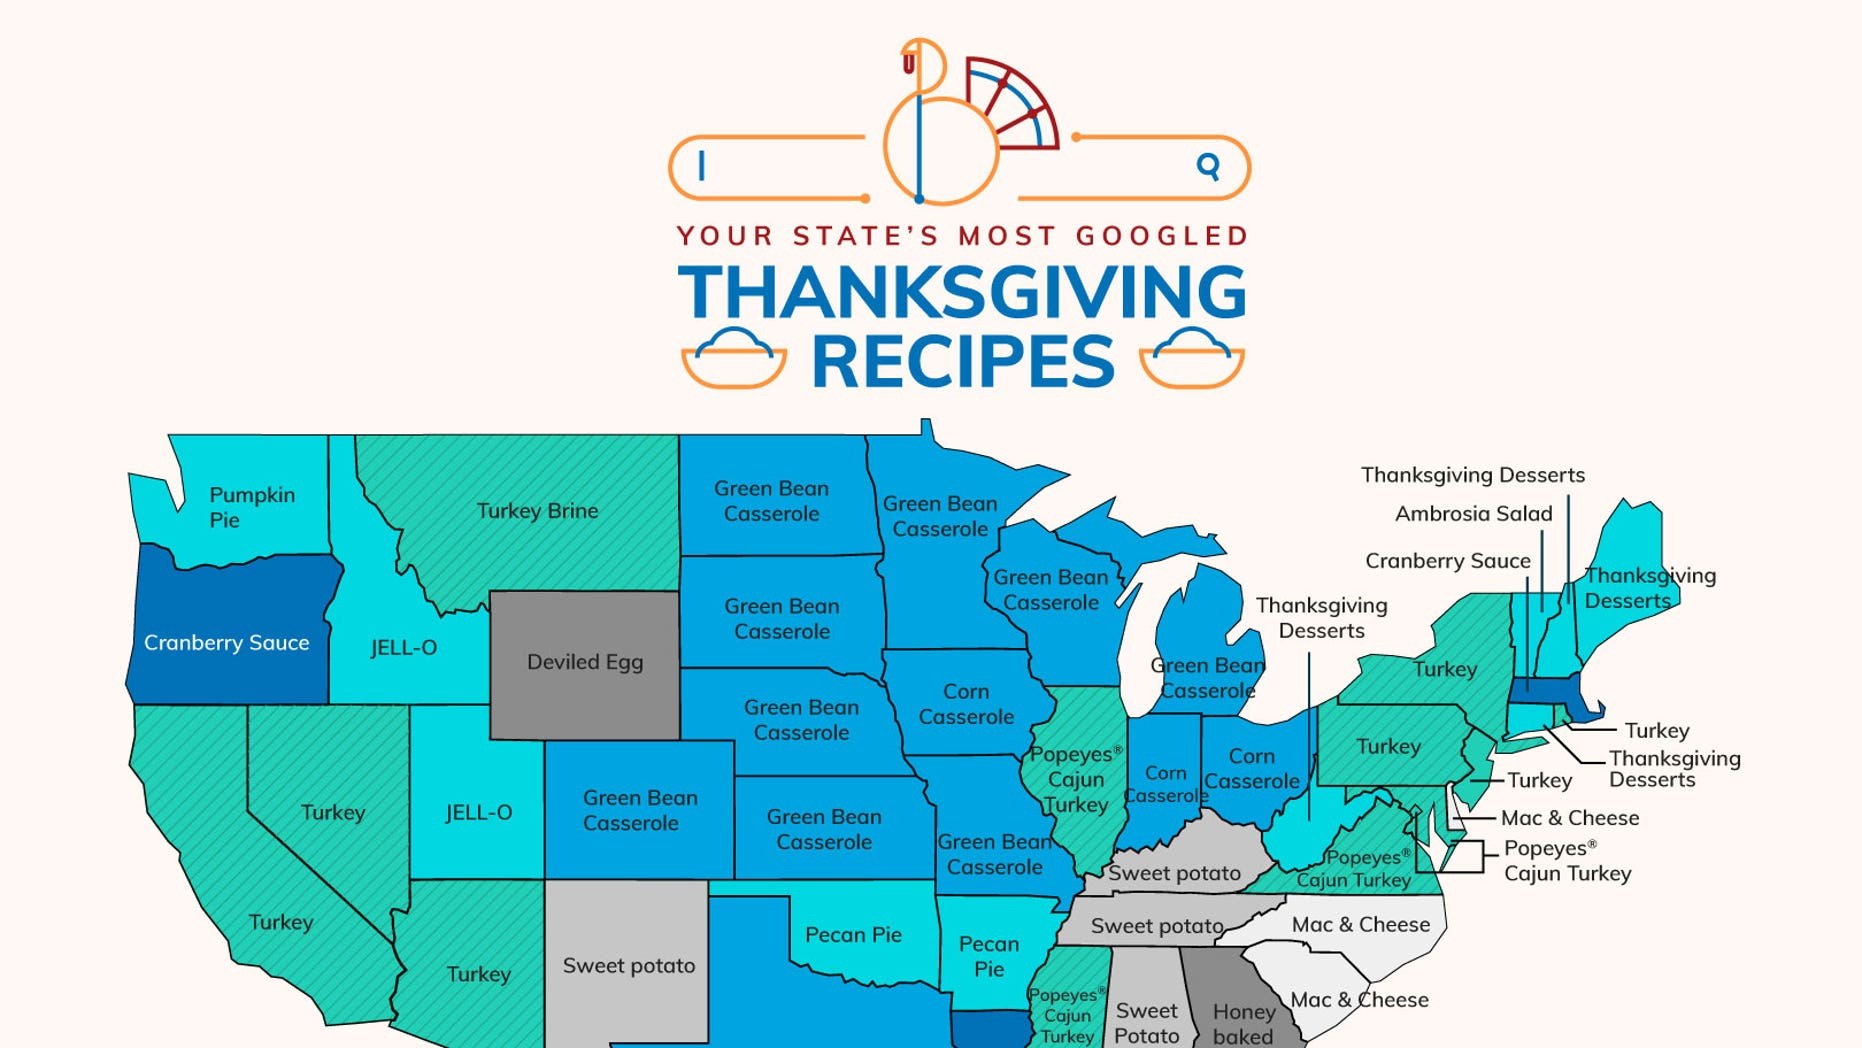 A report shows the most searched for recipe by state.